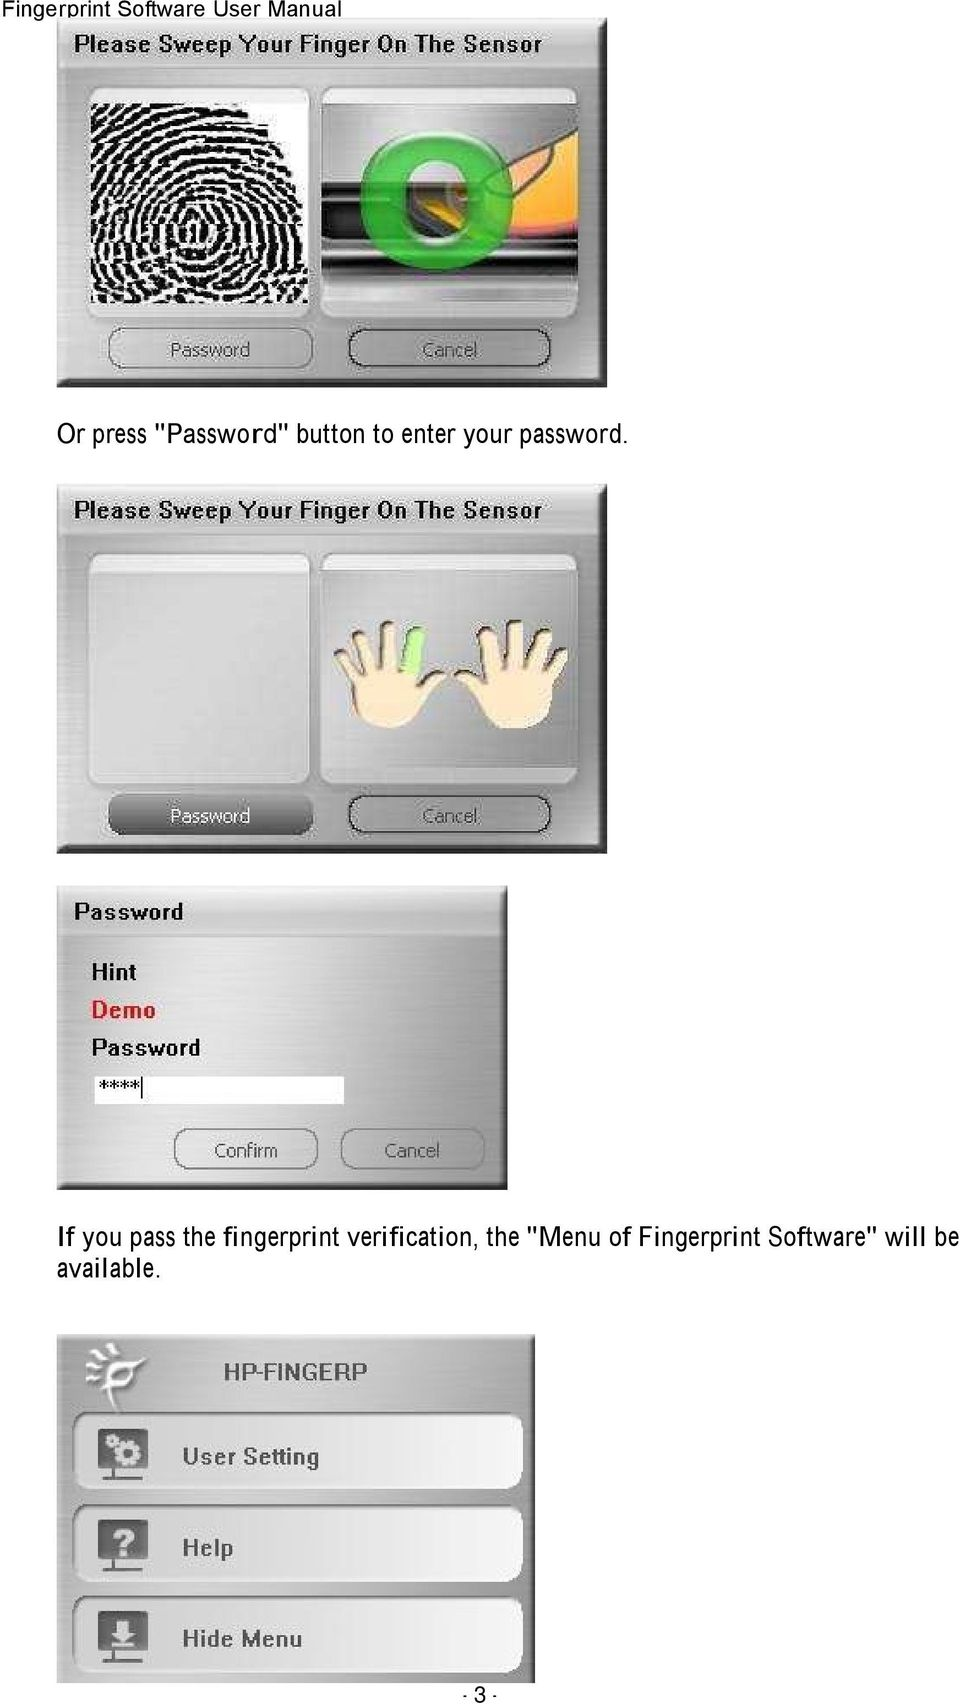 If you pass the fingerprint